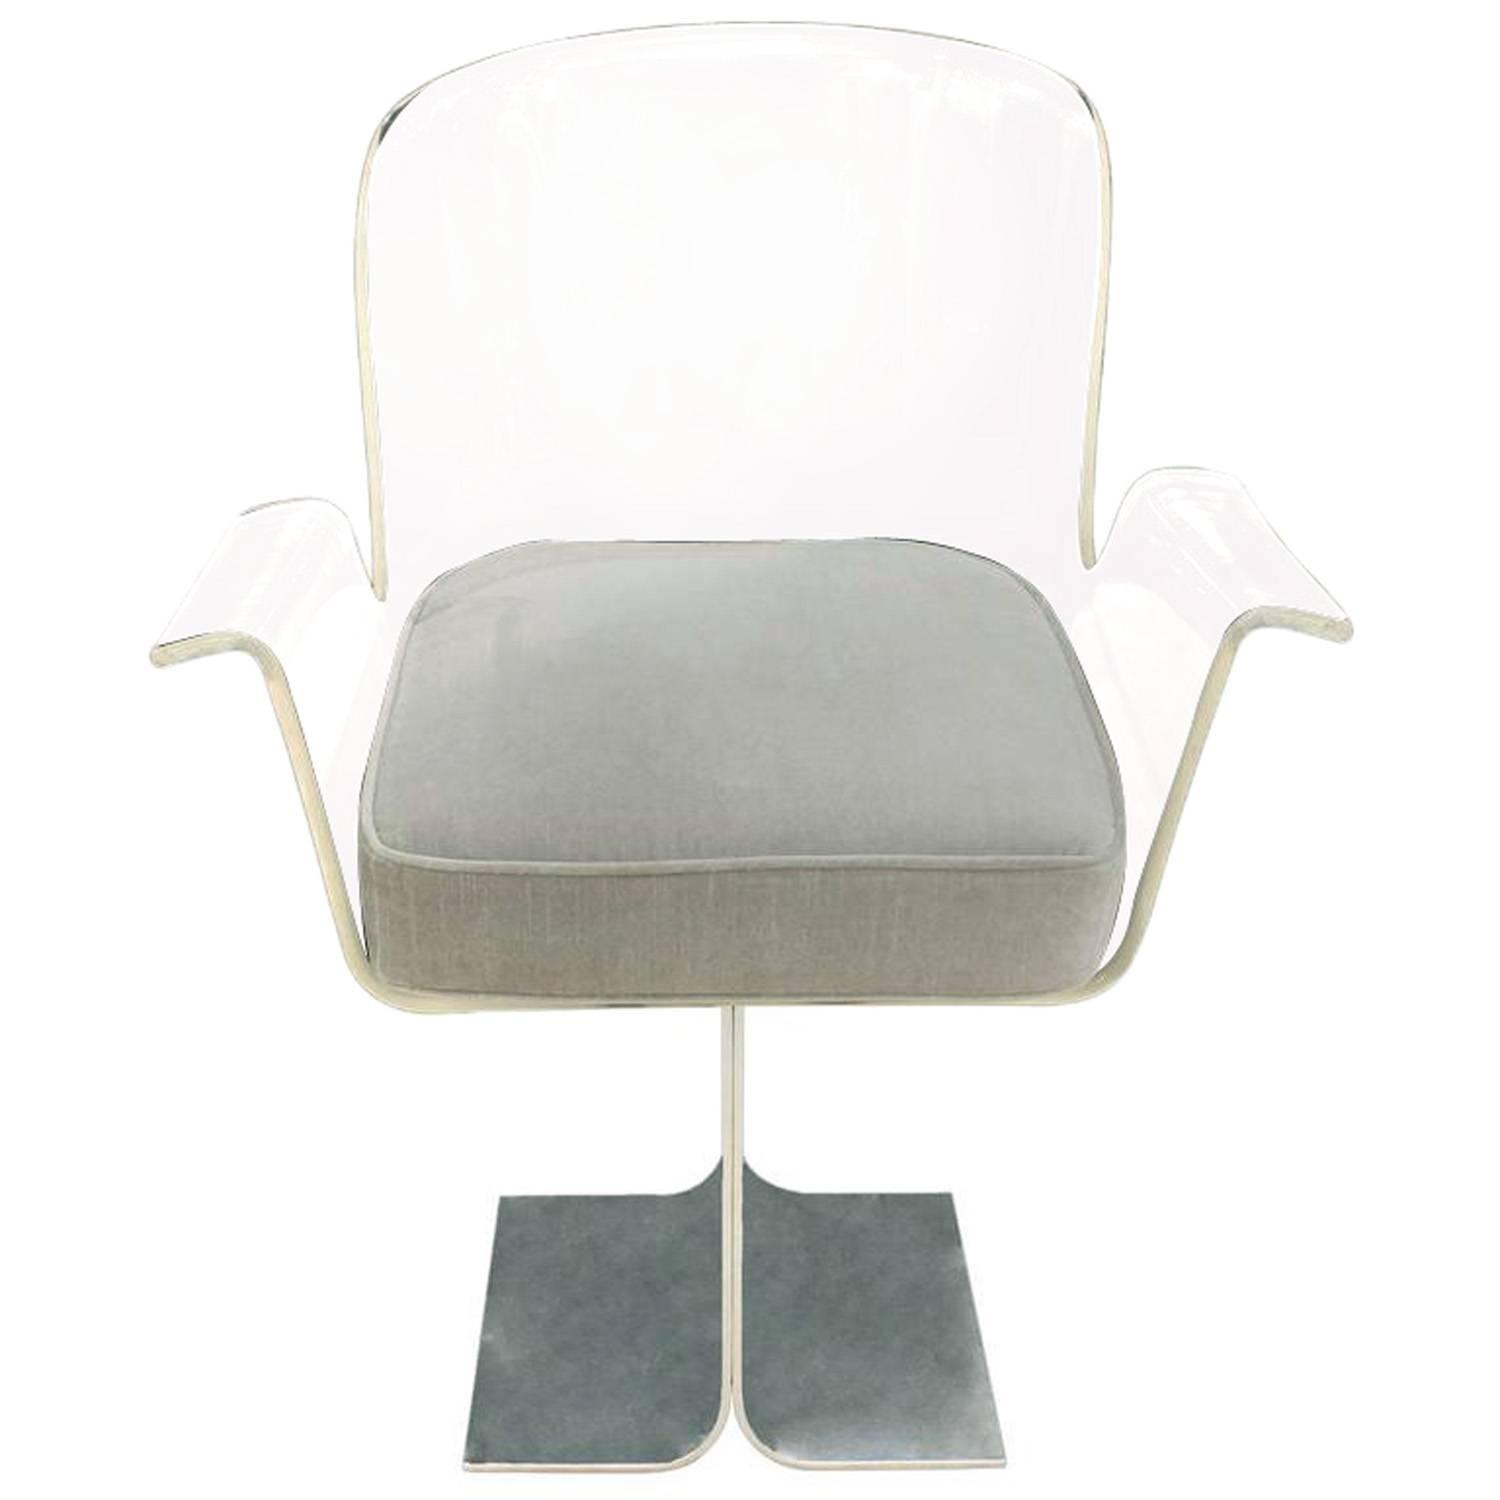 Pace Collection Desk Chair With Swiveling Lucite Seat 1970s at 1stdibs